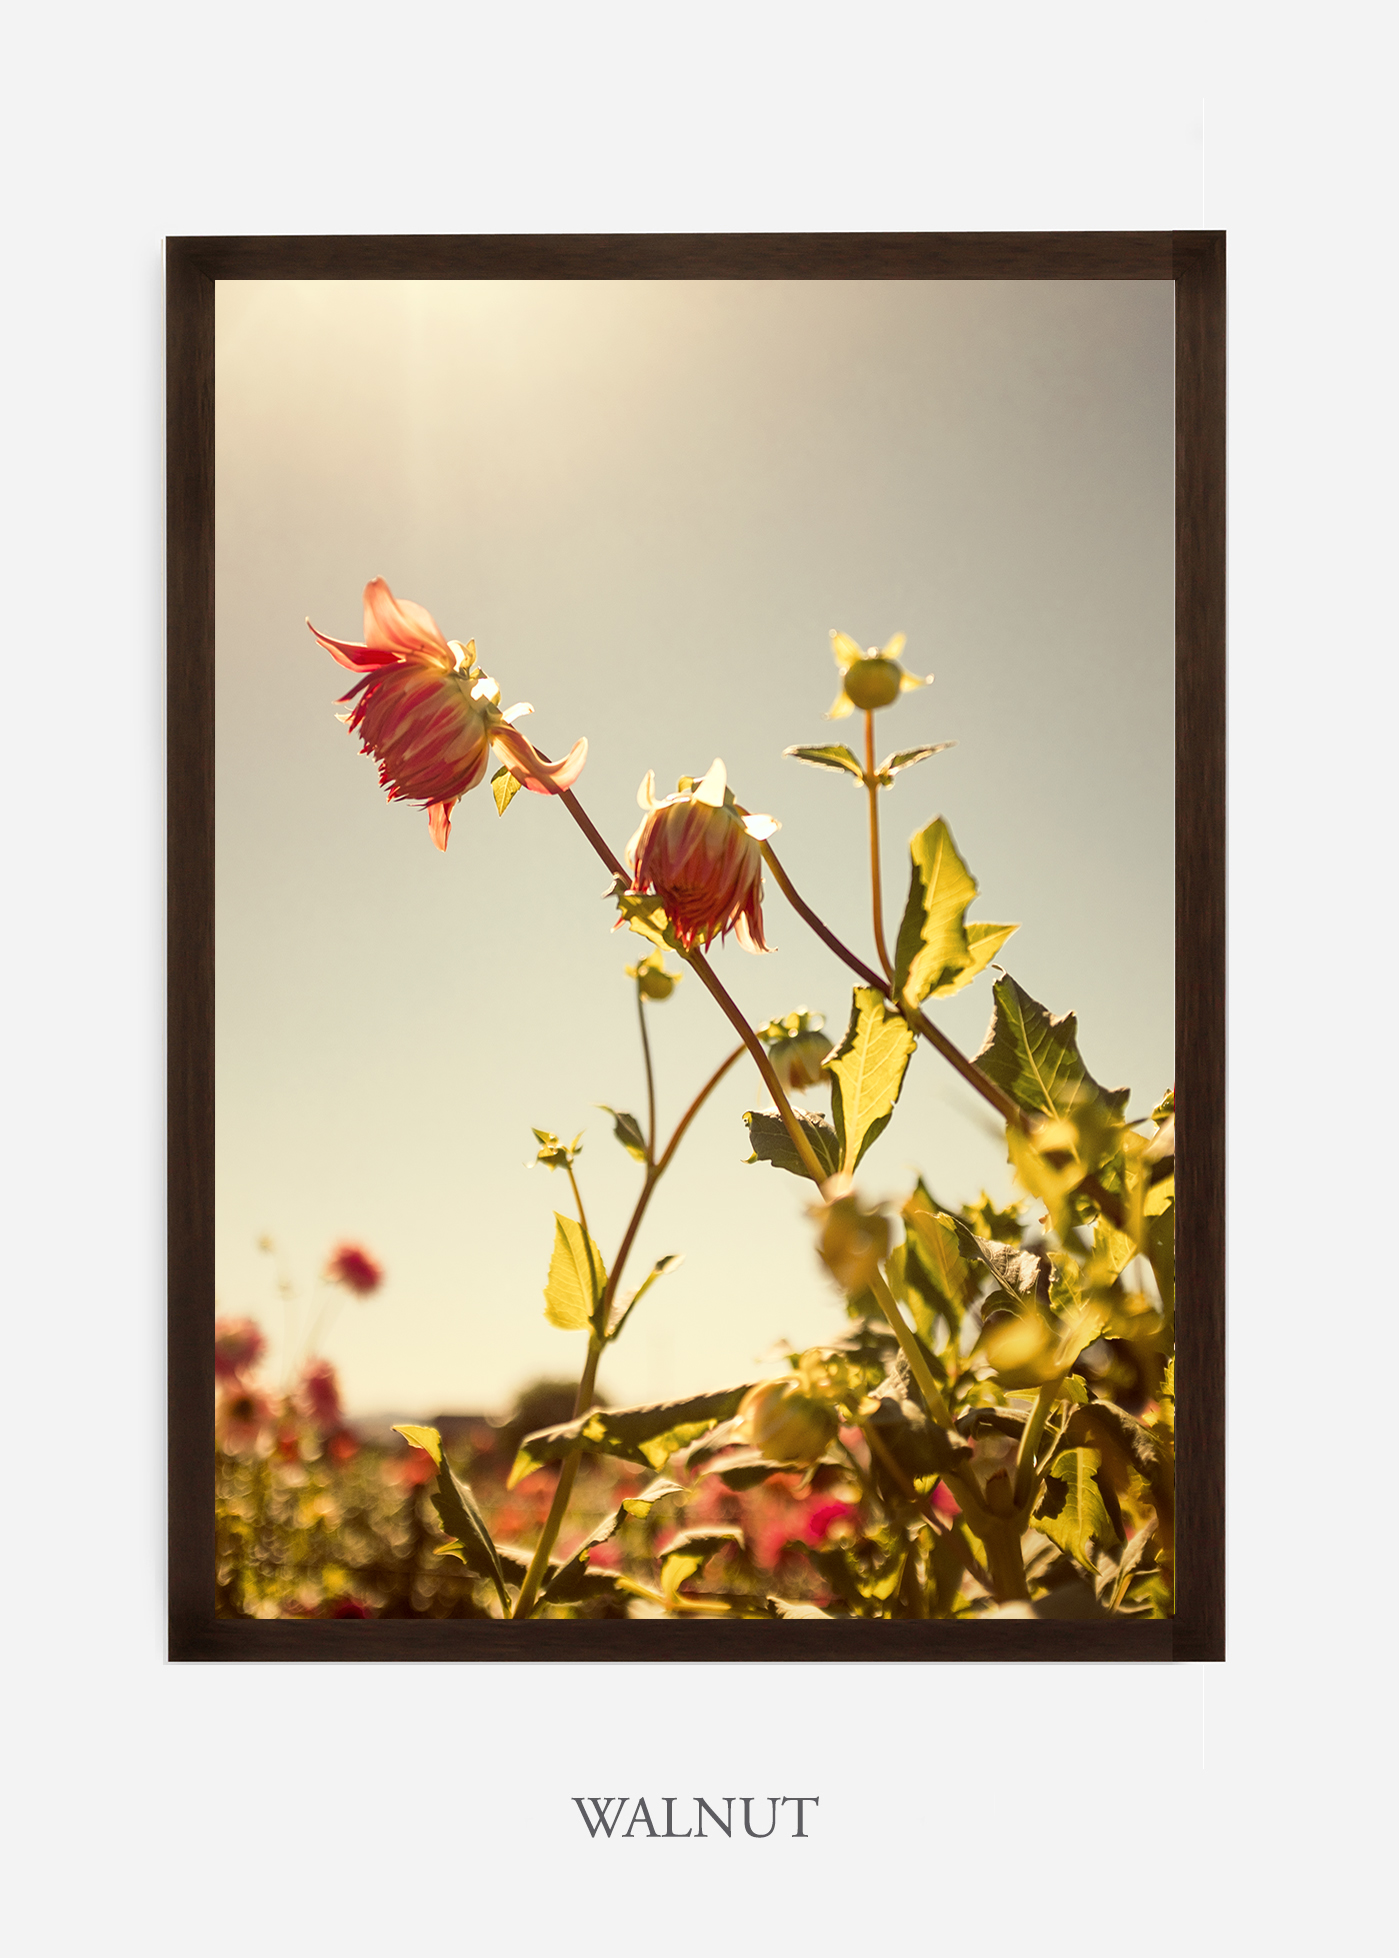 flora-no-10-walnut-custom-frame-dahlia-print-floral-print-floral-art-wilder-california-botanical-prints-home-decor-design-prints-print-shop.jpg